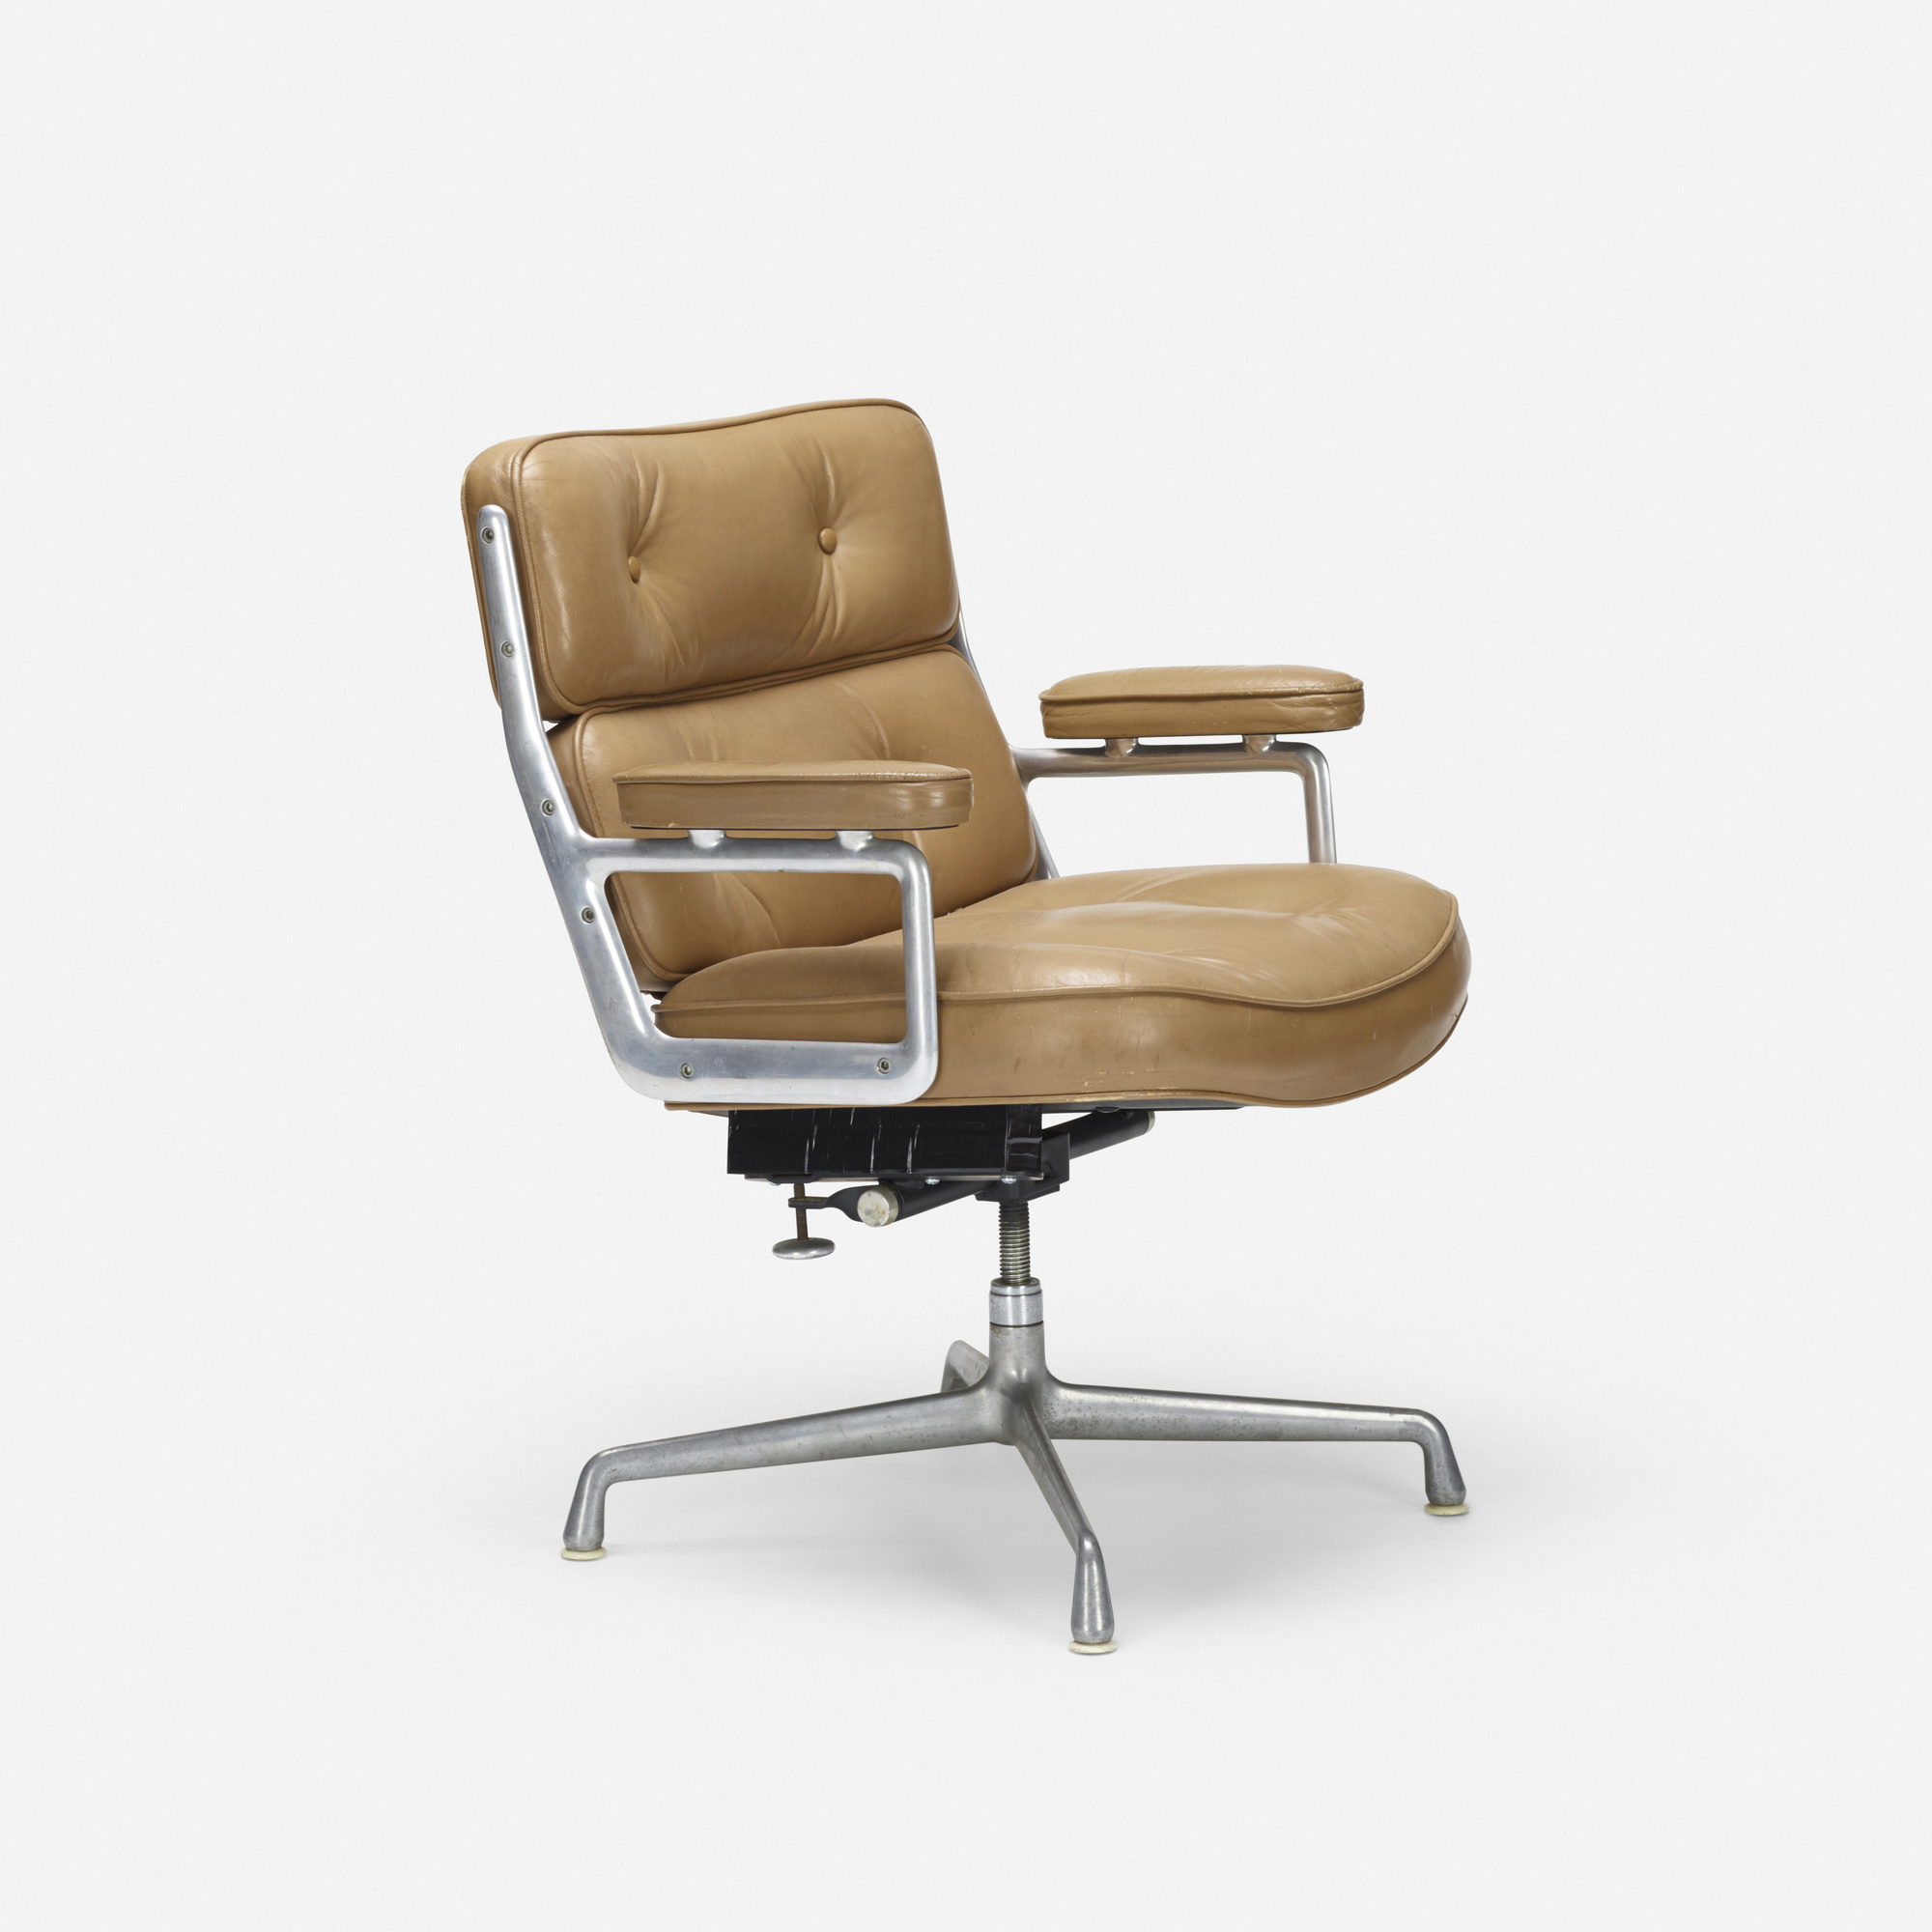 267: Charles and Ray Eames / Time Life armchair (1 of 3)